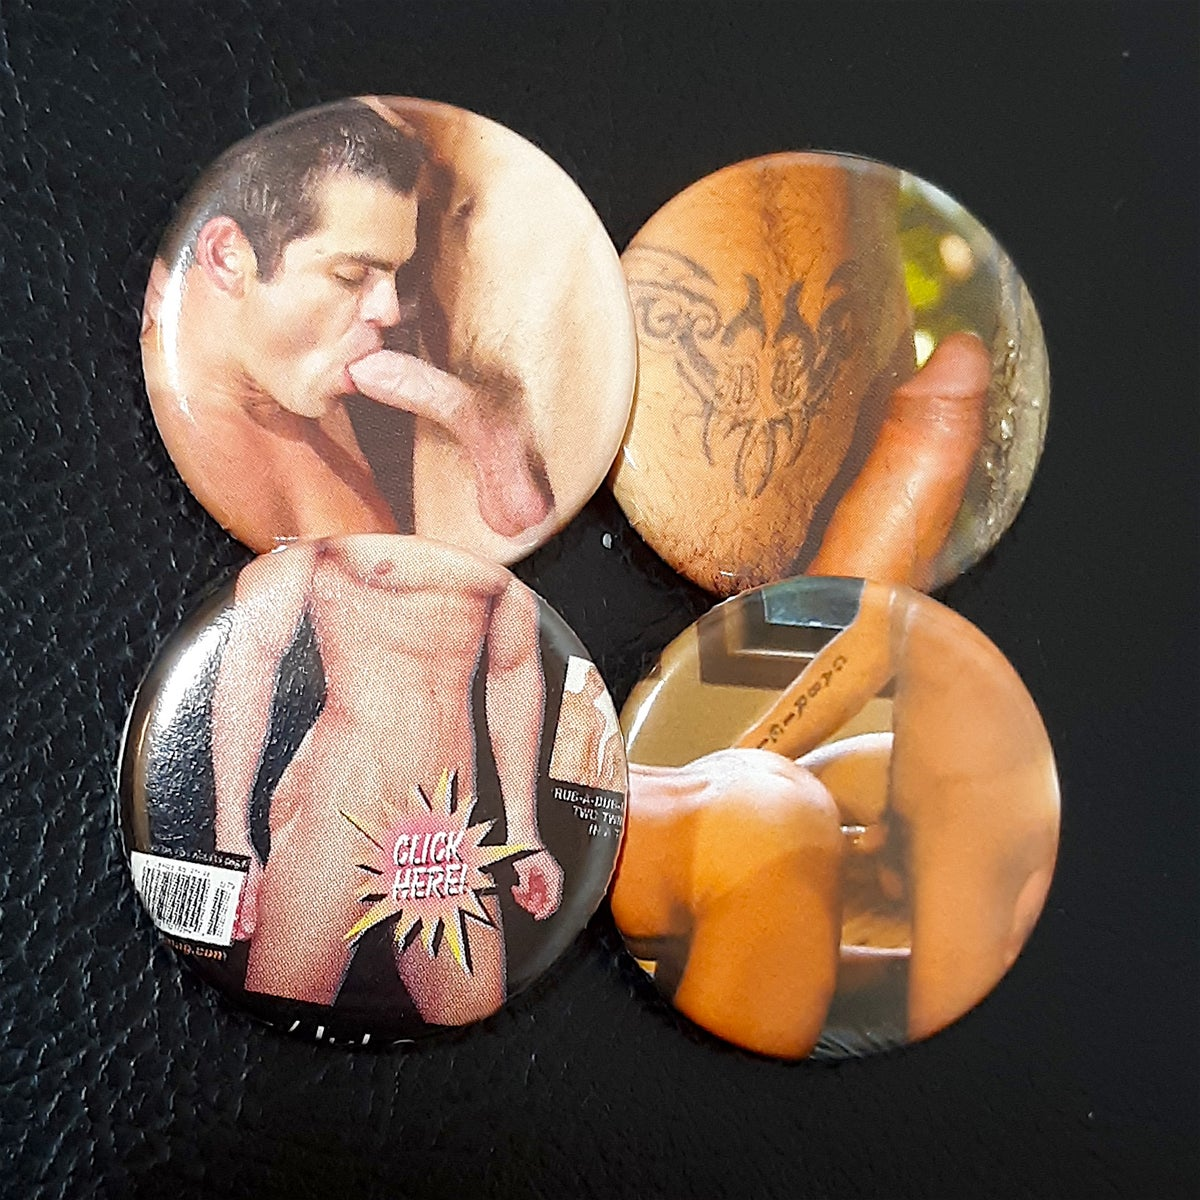 Porn Pin 4 Pack